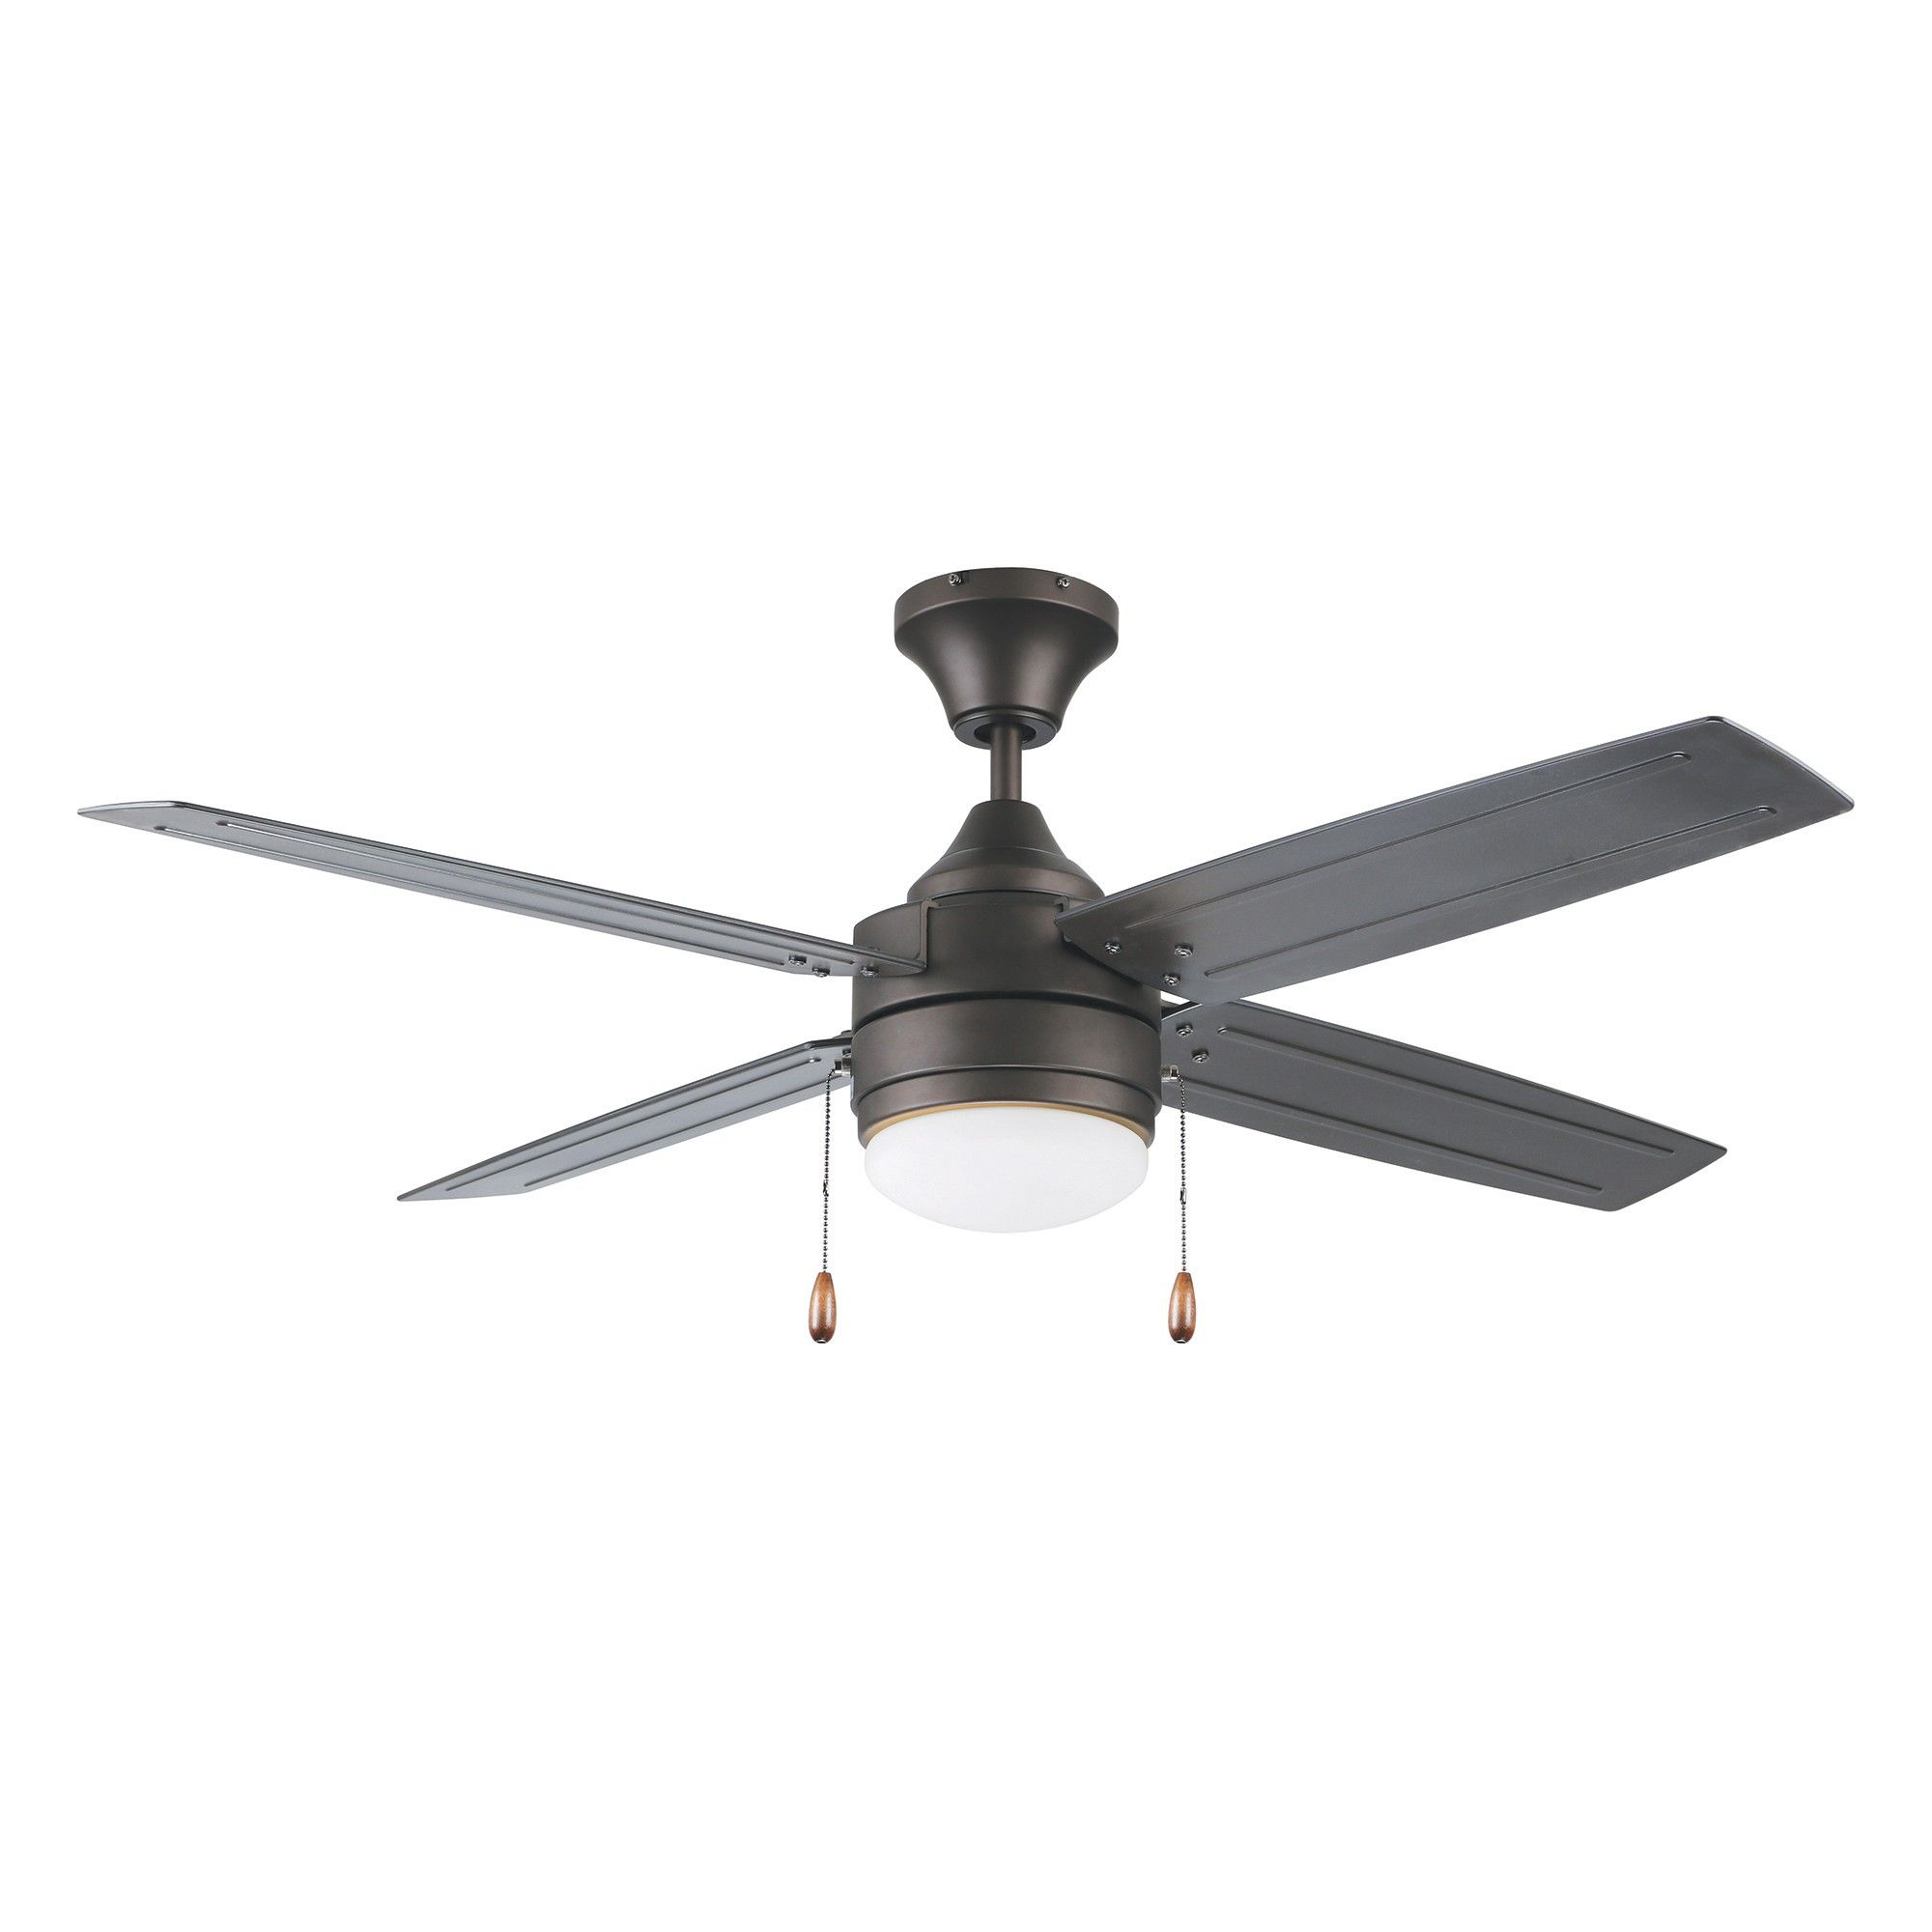 Litex Aikman 52 In Led Ceiling Fan 4 Blade Light Kit Dimmable Indoor Outdoor In Oil Rubbed Bronze Ceiling Fan Bronze Ceiling Fan Led Ceiling Fan